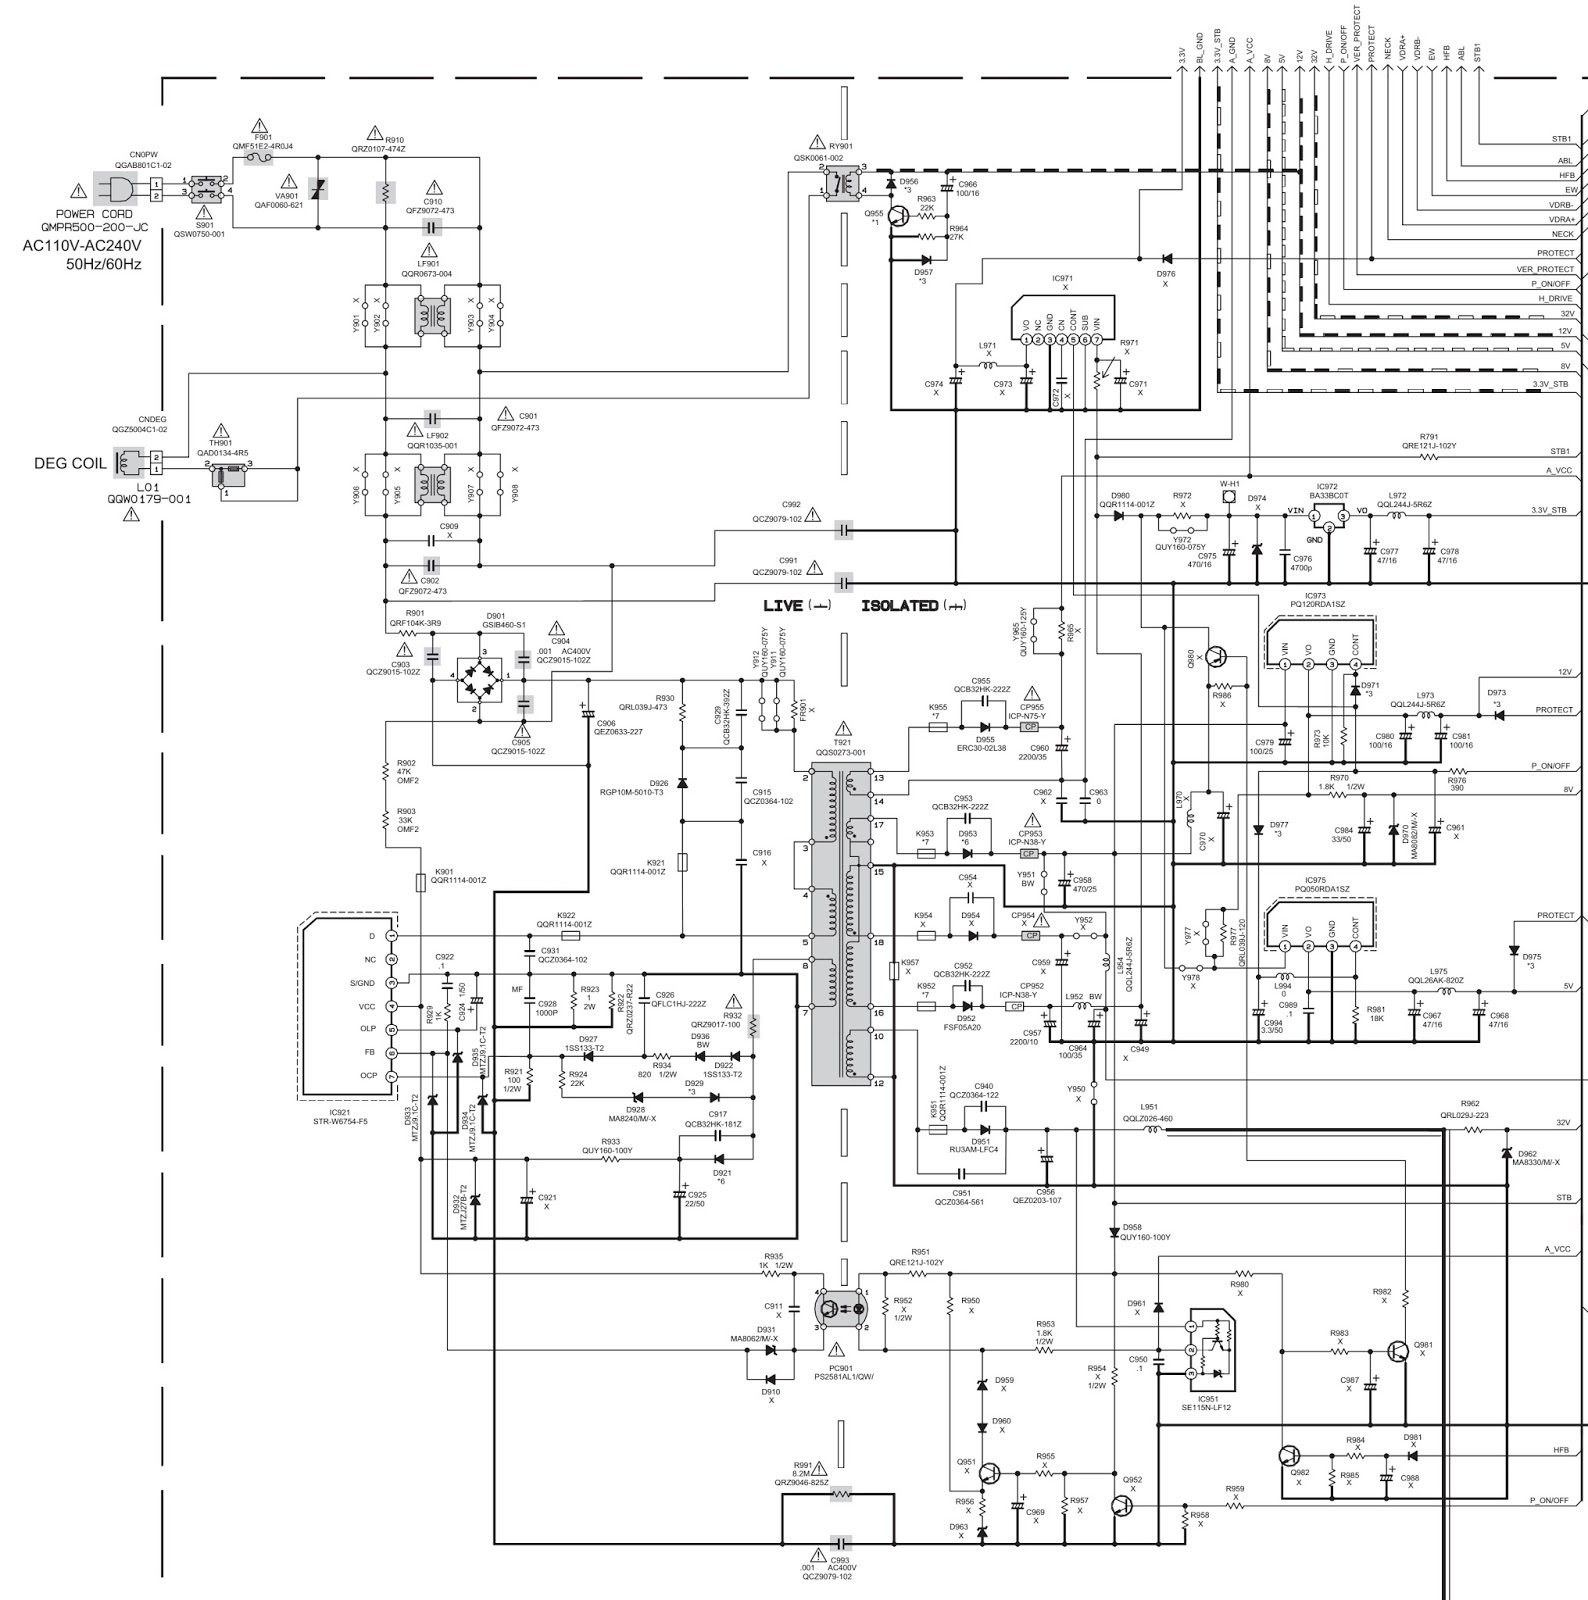 Panasonic C7203u Wiring Diagram